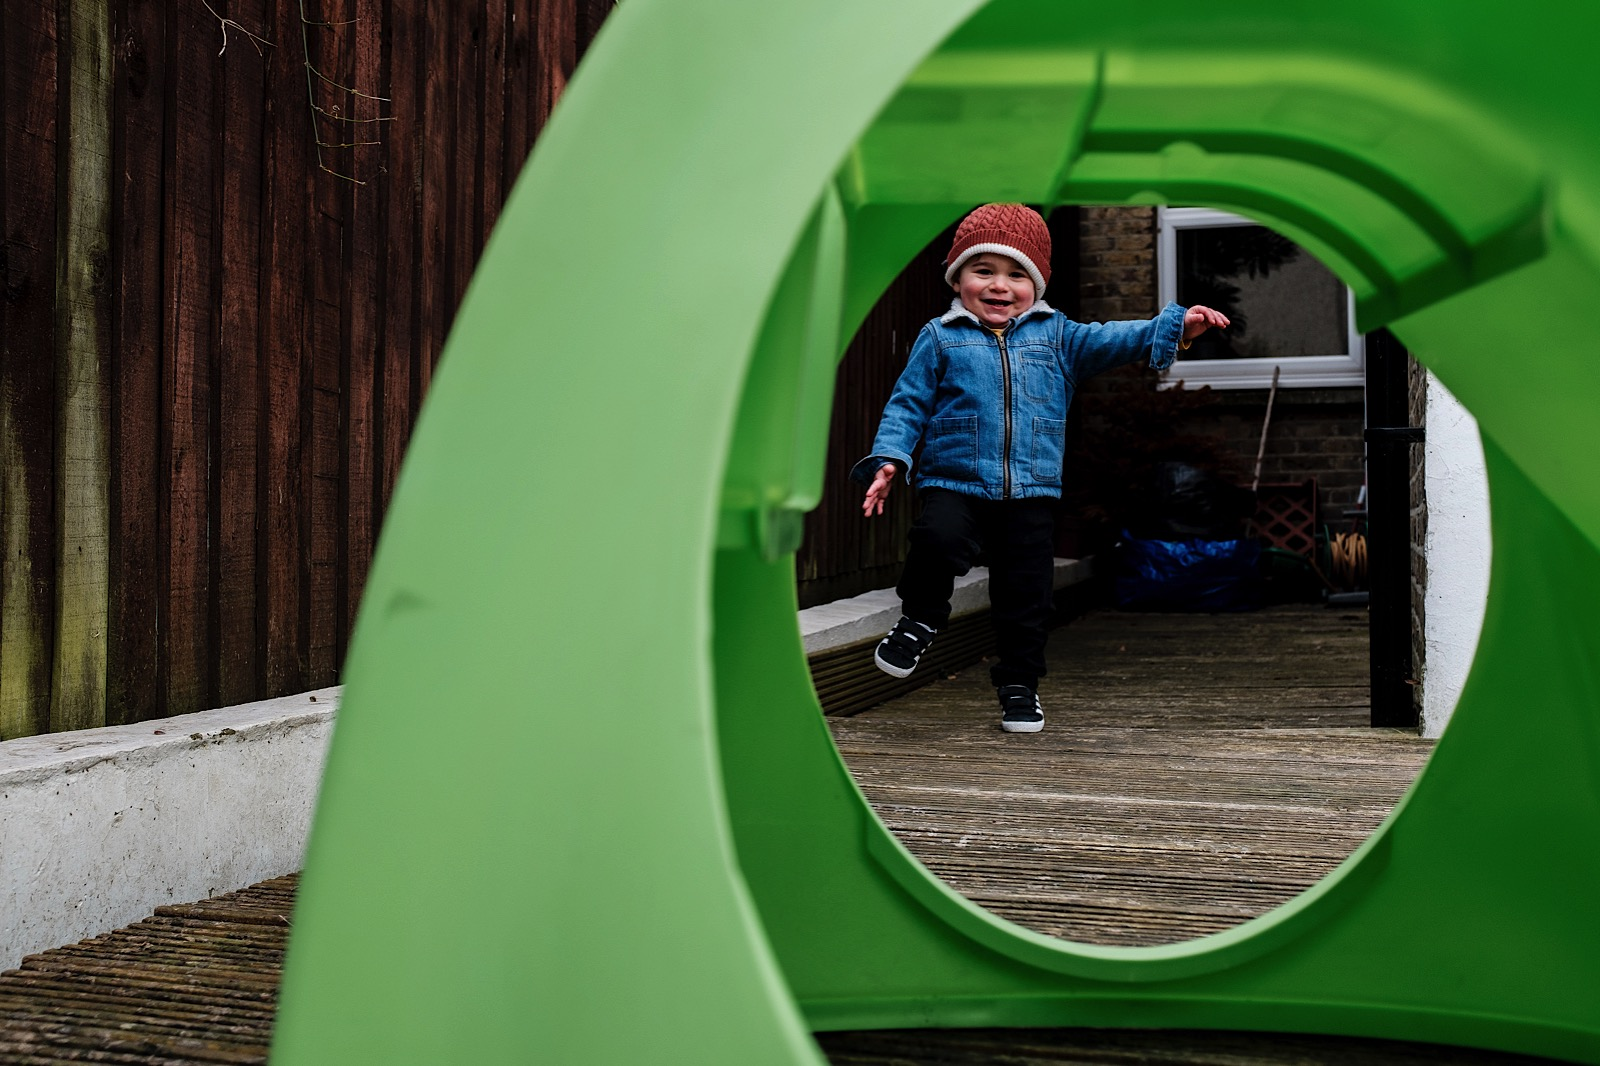 Image of little boy wearing denim jacket and red bobble hat caught through green slide opening